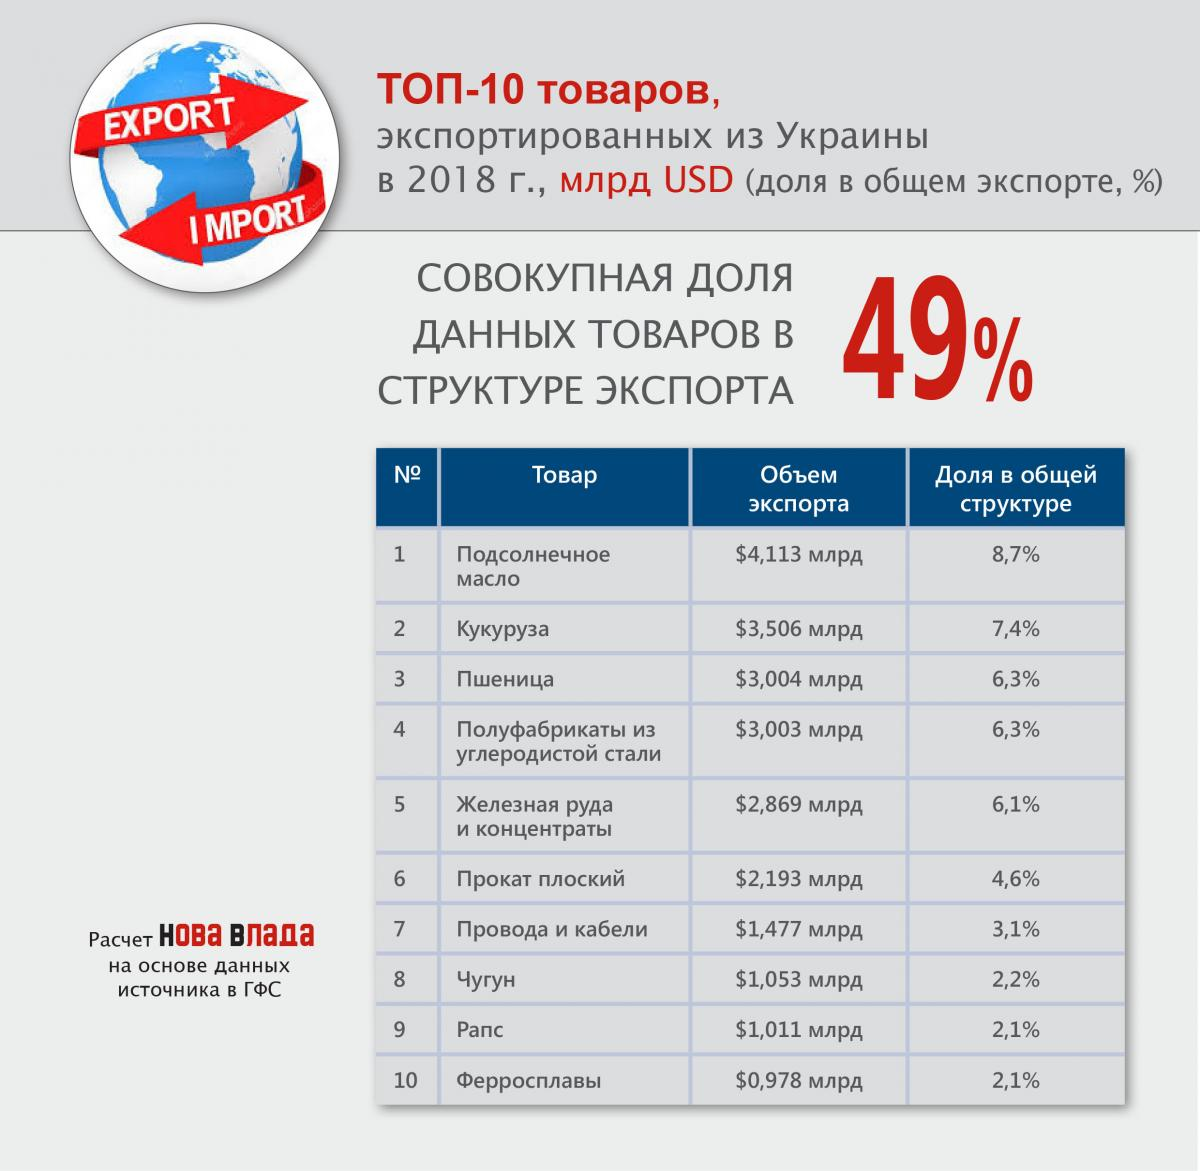 top10_export_tovary_2018.jpg